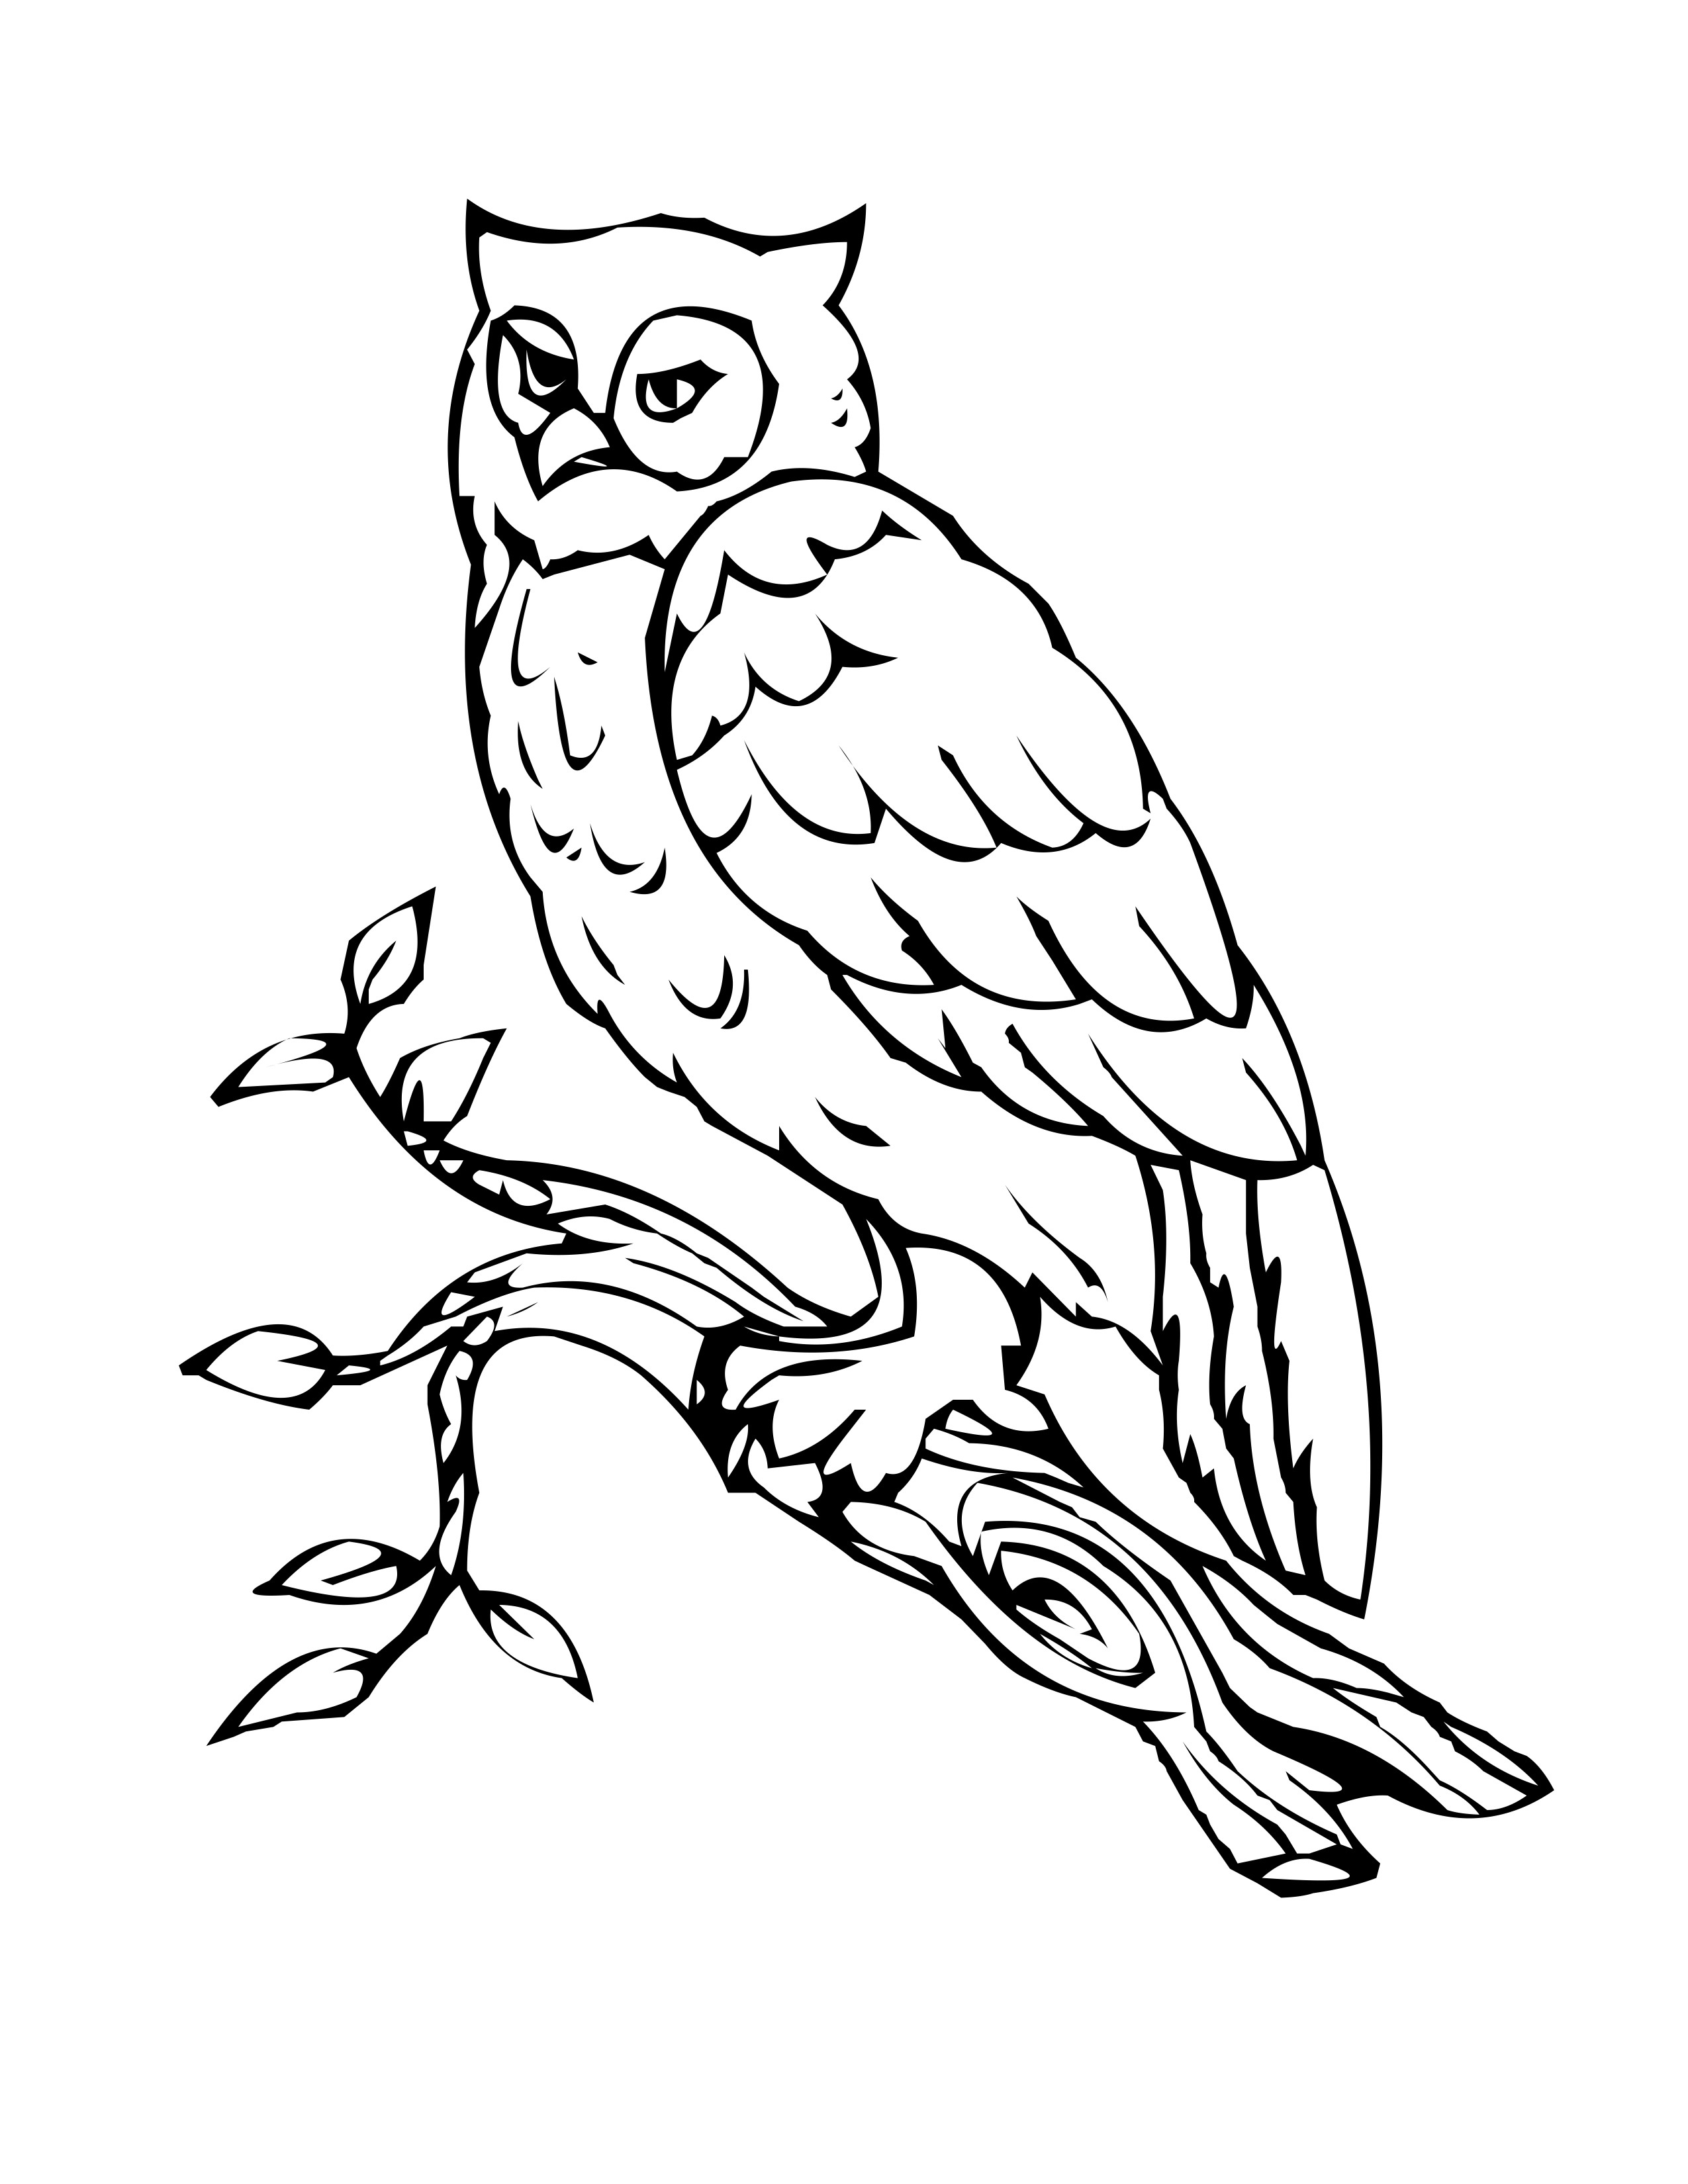 coloring kite images black and white bird coloring pages black kite white images coloring and